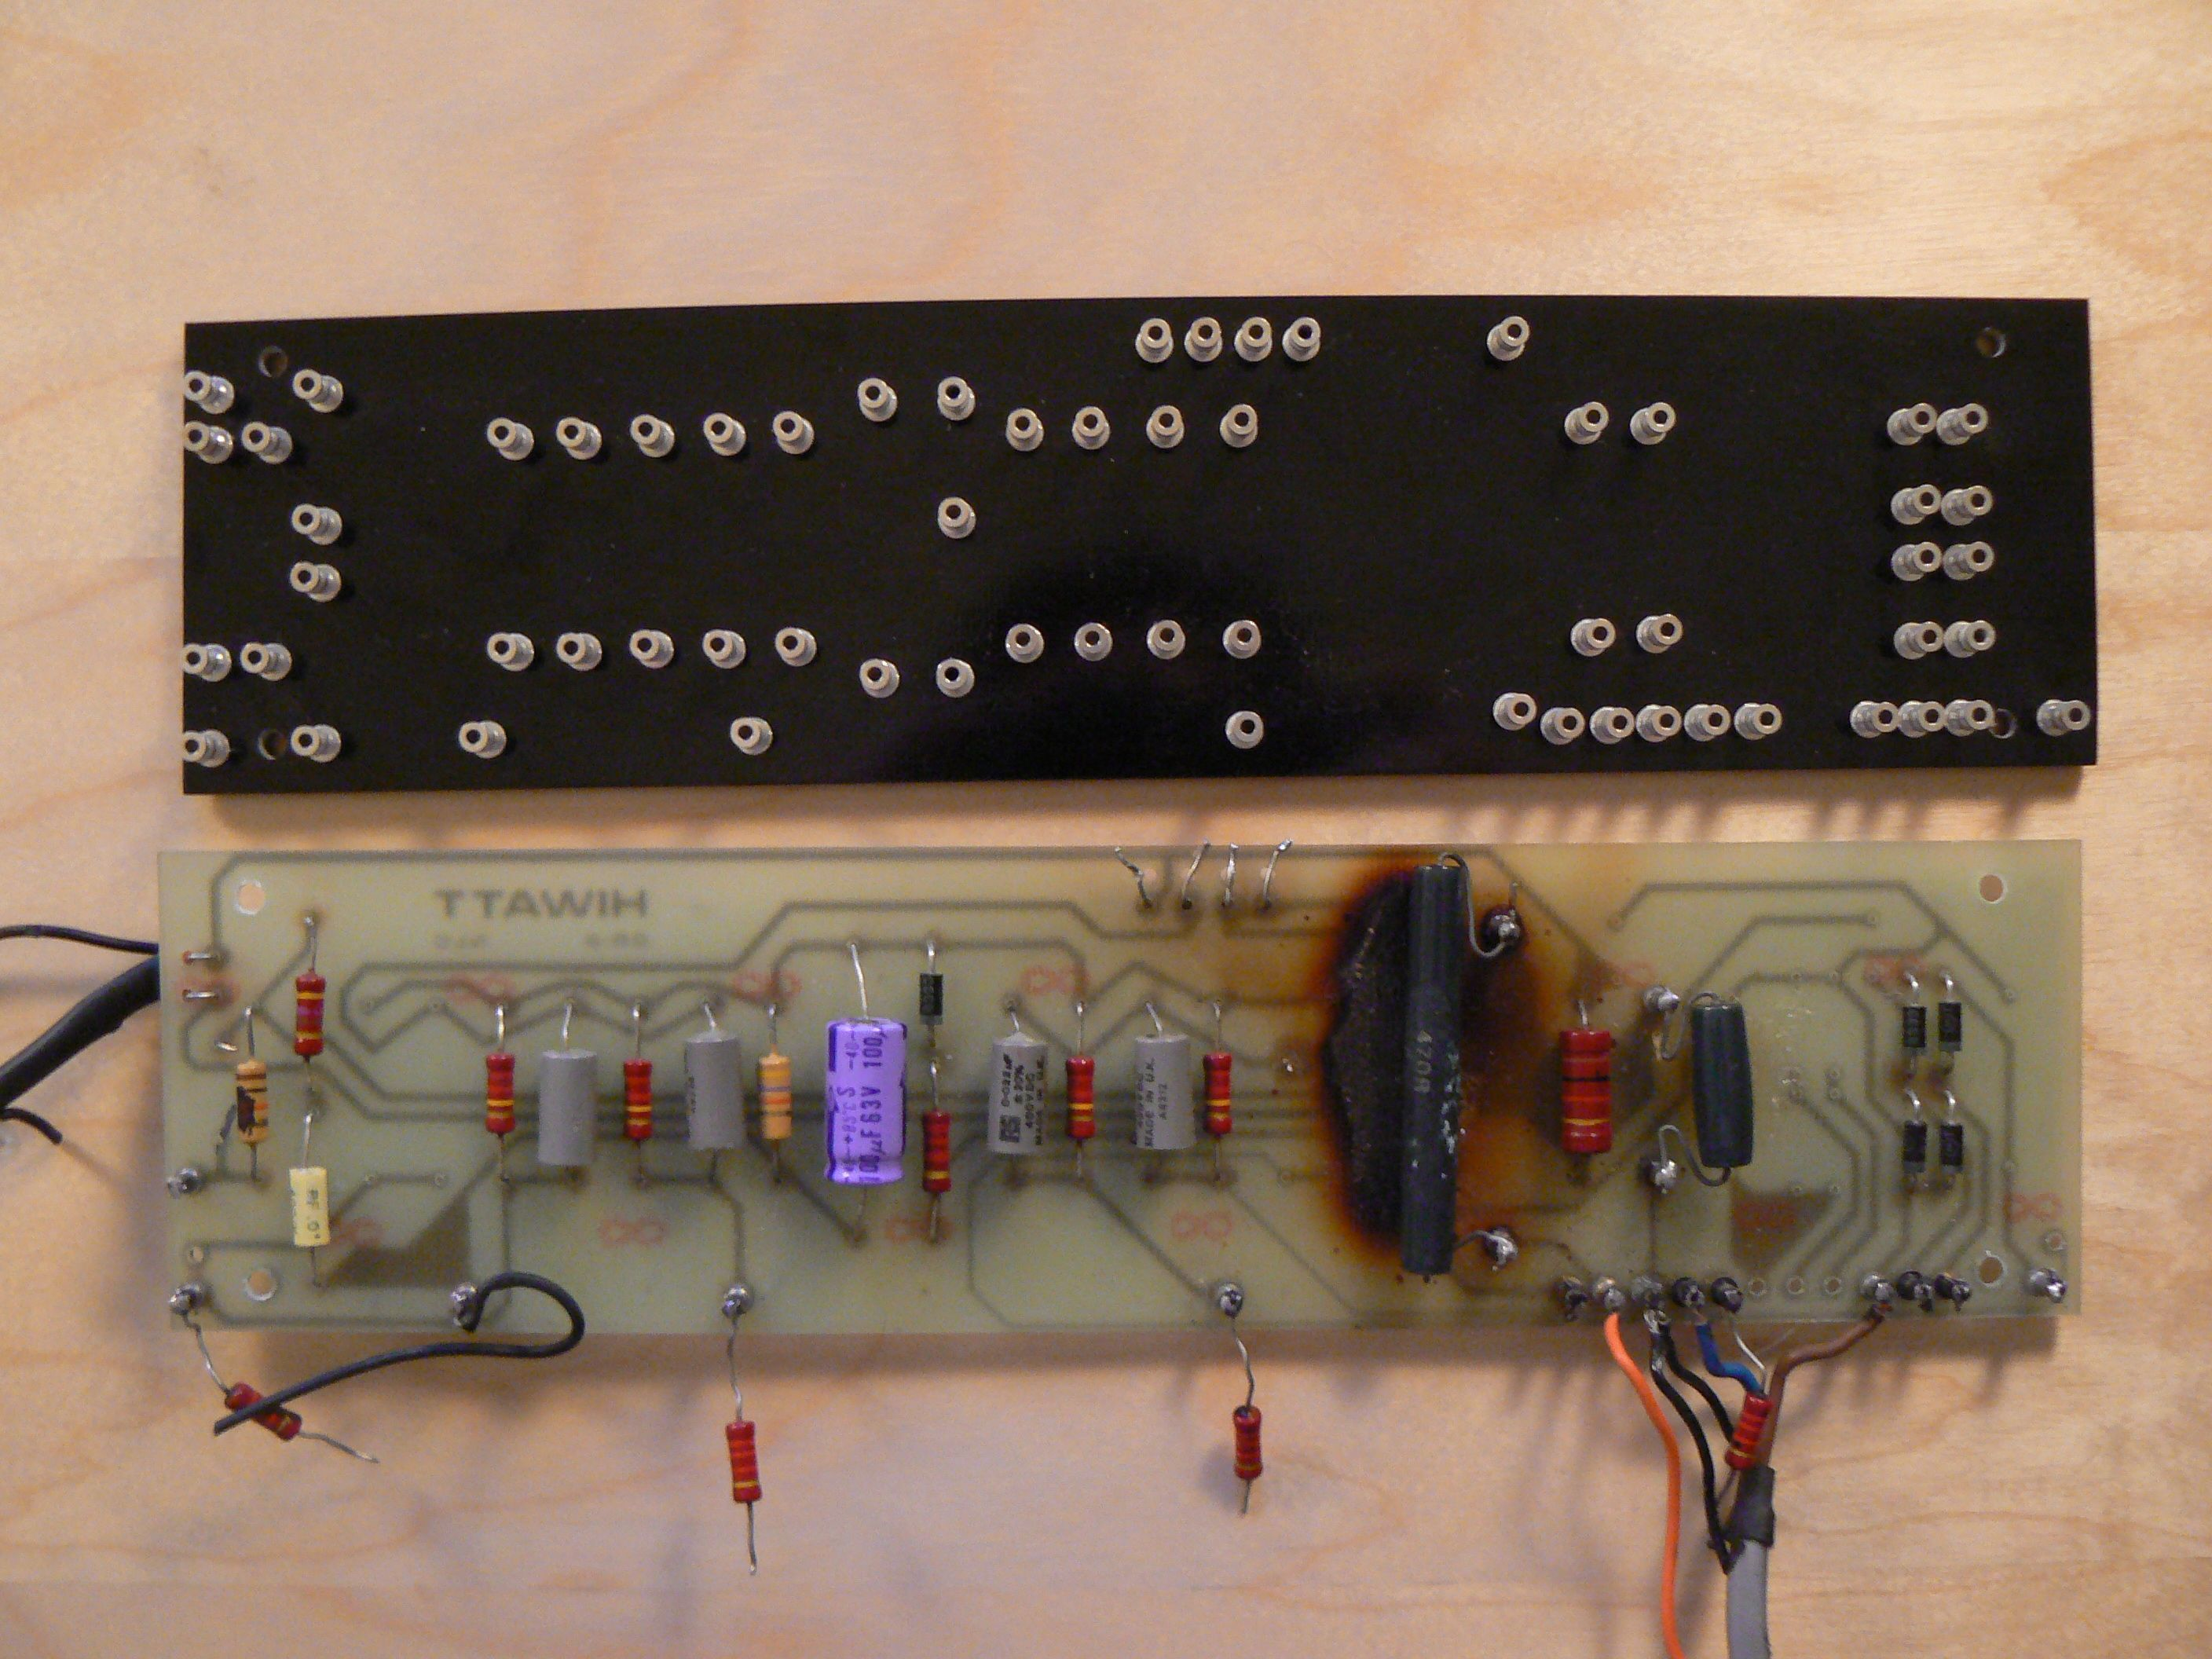 hiwatt ol103 restoration old burnt power supply board and new replacement turret board  [ 2816 x 2112 Pixel ]